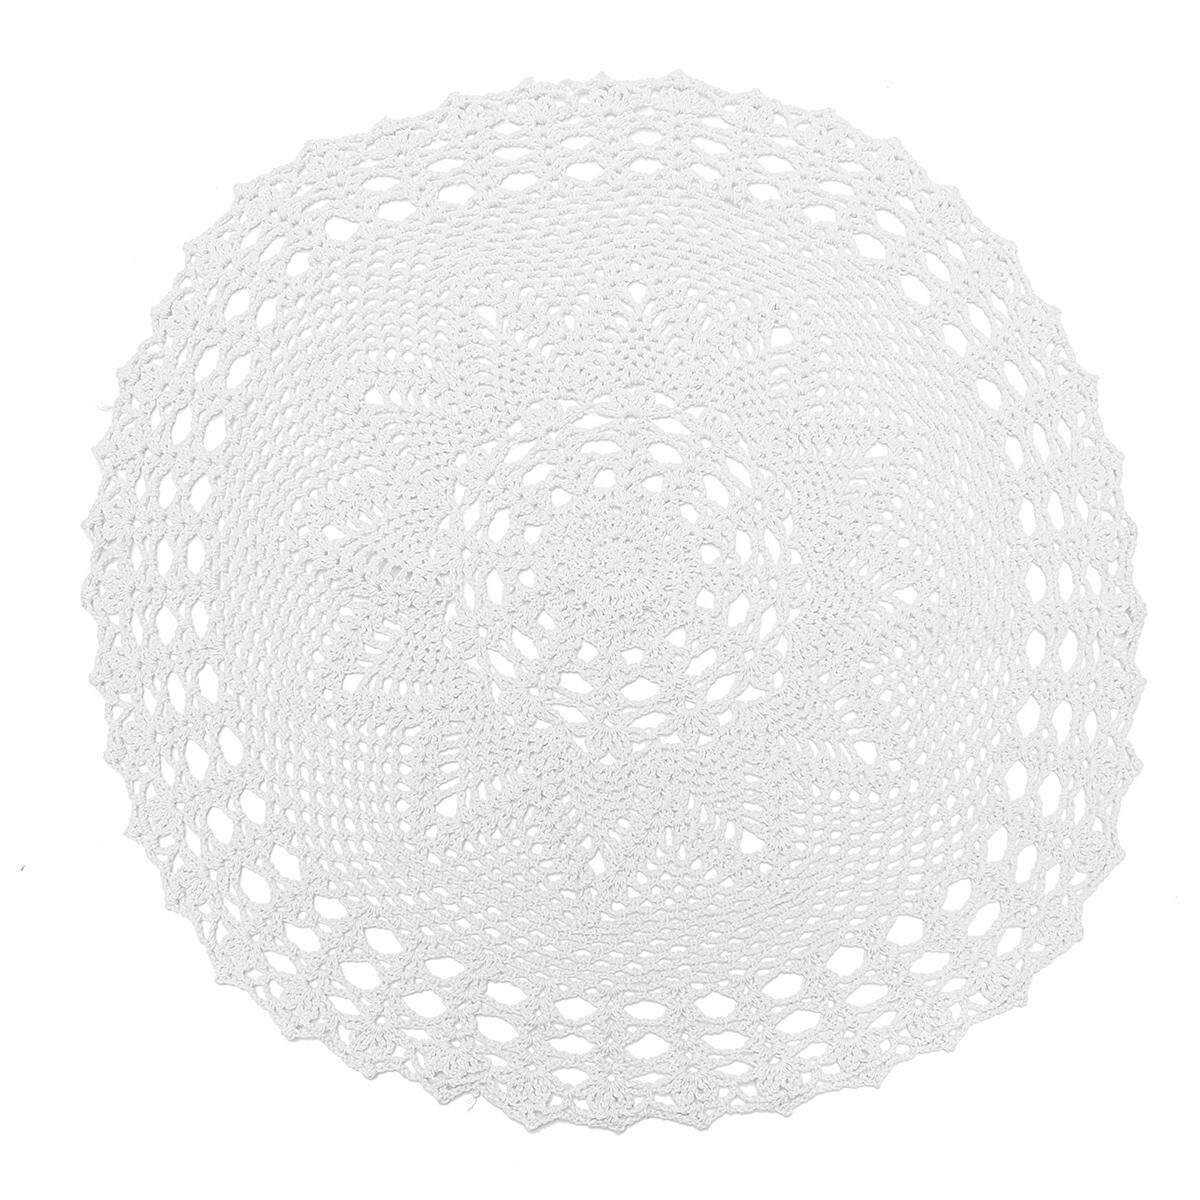 55cm Vintage Round Cotton Hand Crocheted Lace Floral Doilies Tablecloth Placemat#White - intl